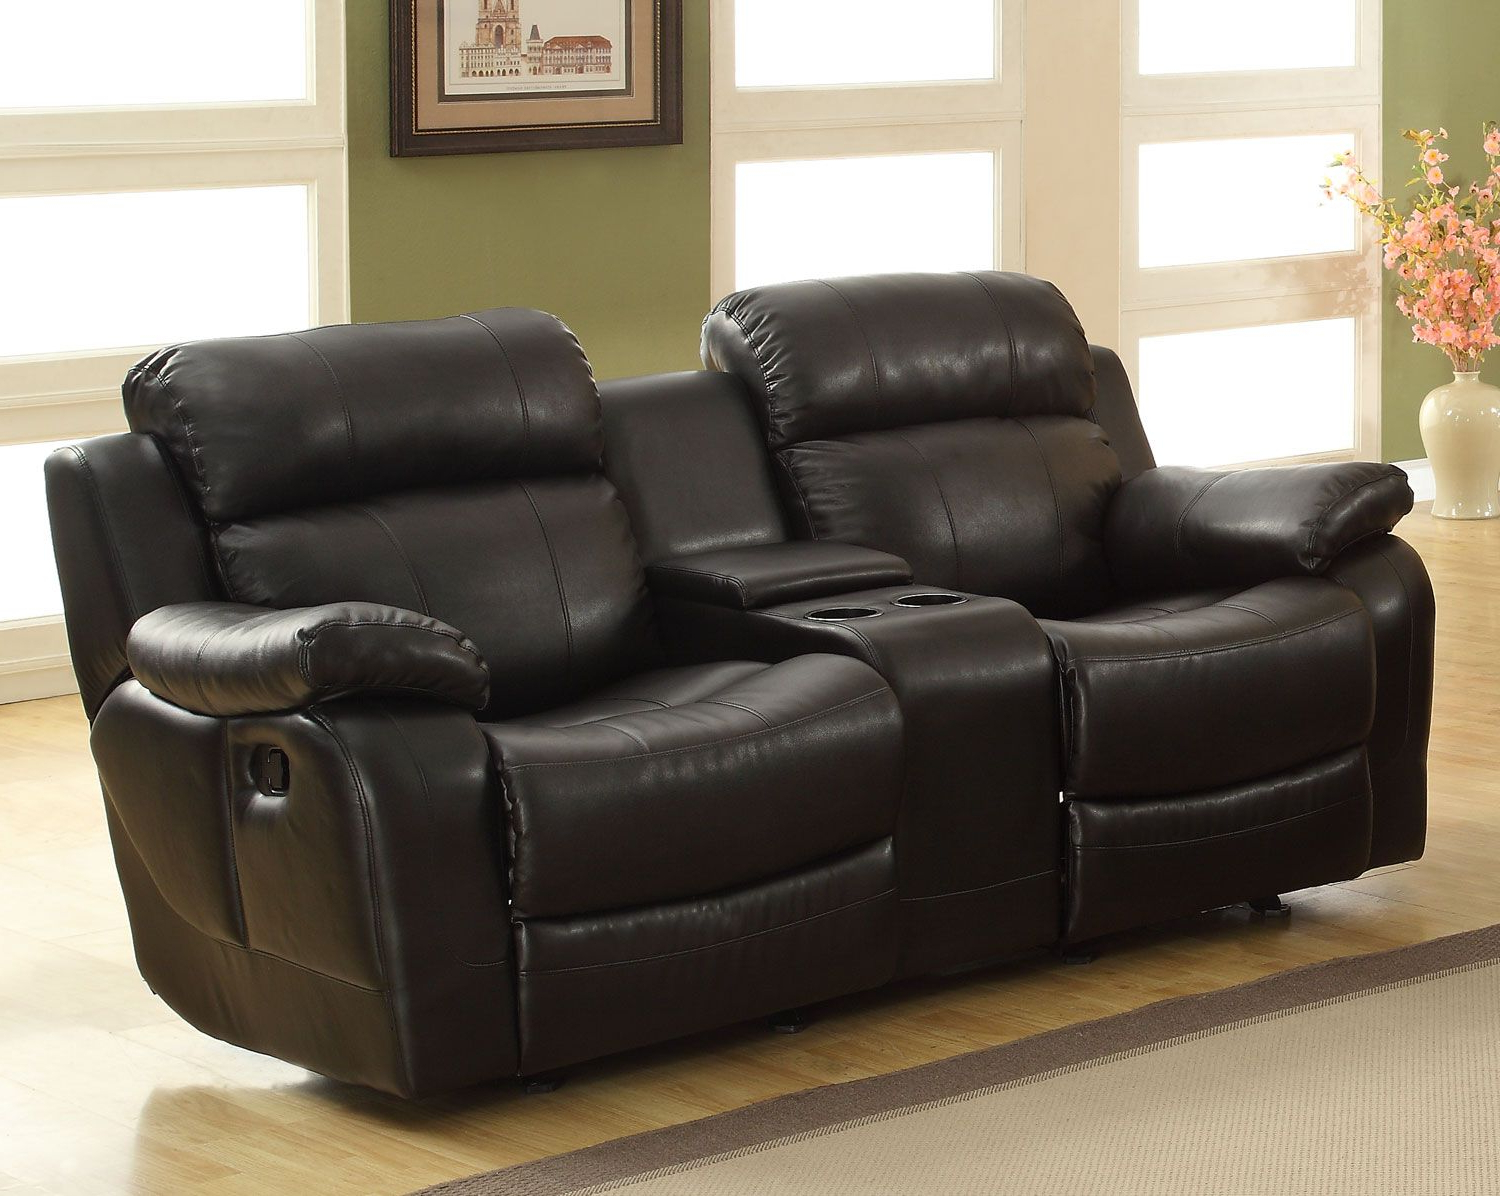 Homelegance Marille Love Seat Glider Recliner With Center Console Throughout Most Recently Released Travis Cognac Leather 6 Piece Power Reclining Sectionals With Power Headrest & Usb (View 5 of 20)